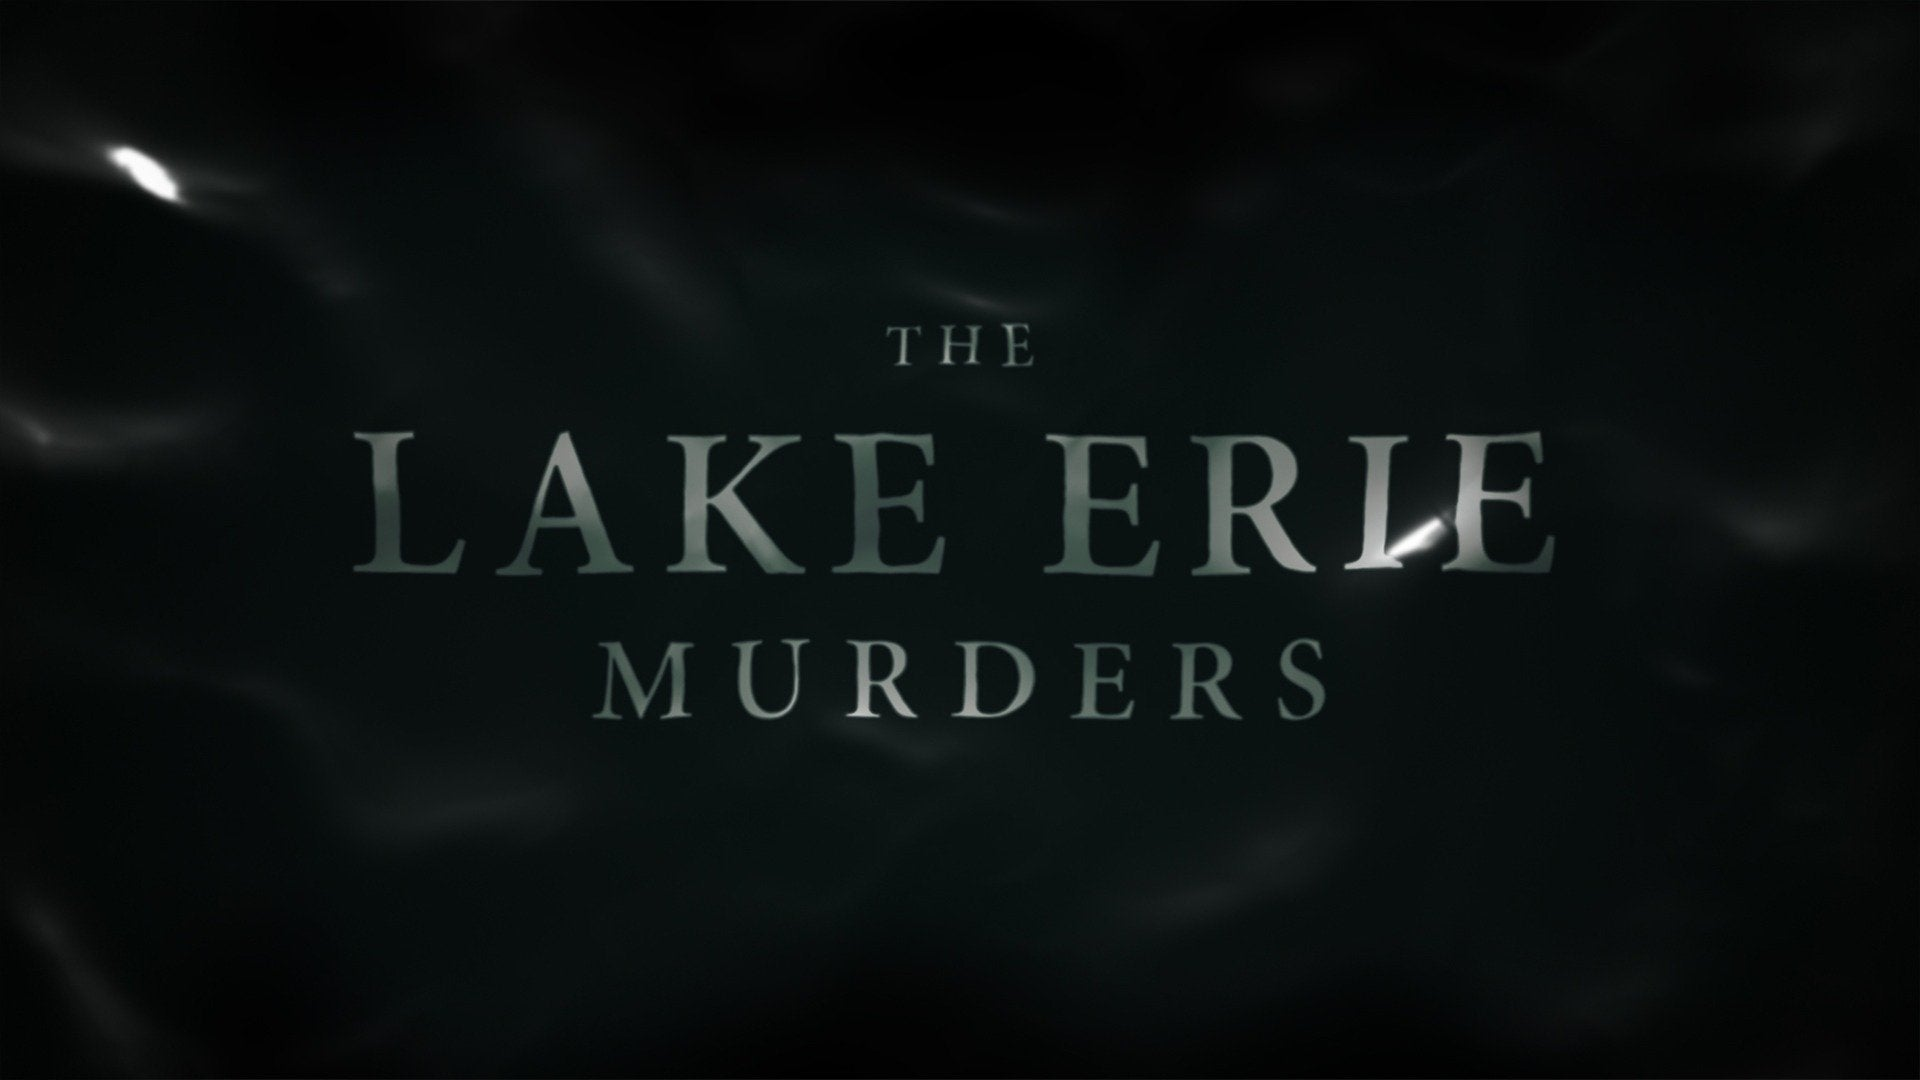 The Lake Erie Murders: Who Killed Amy Mihaljevic?